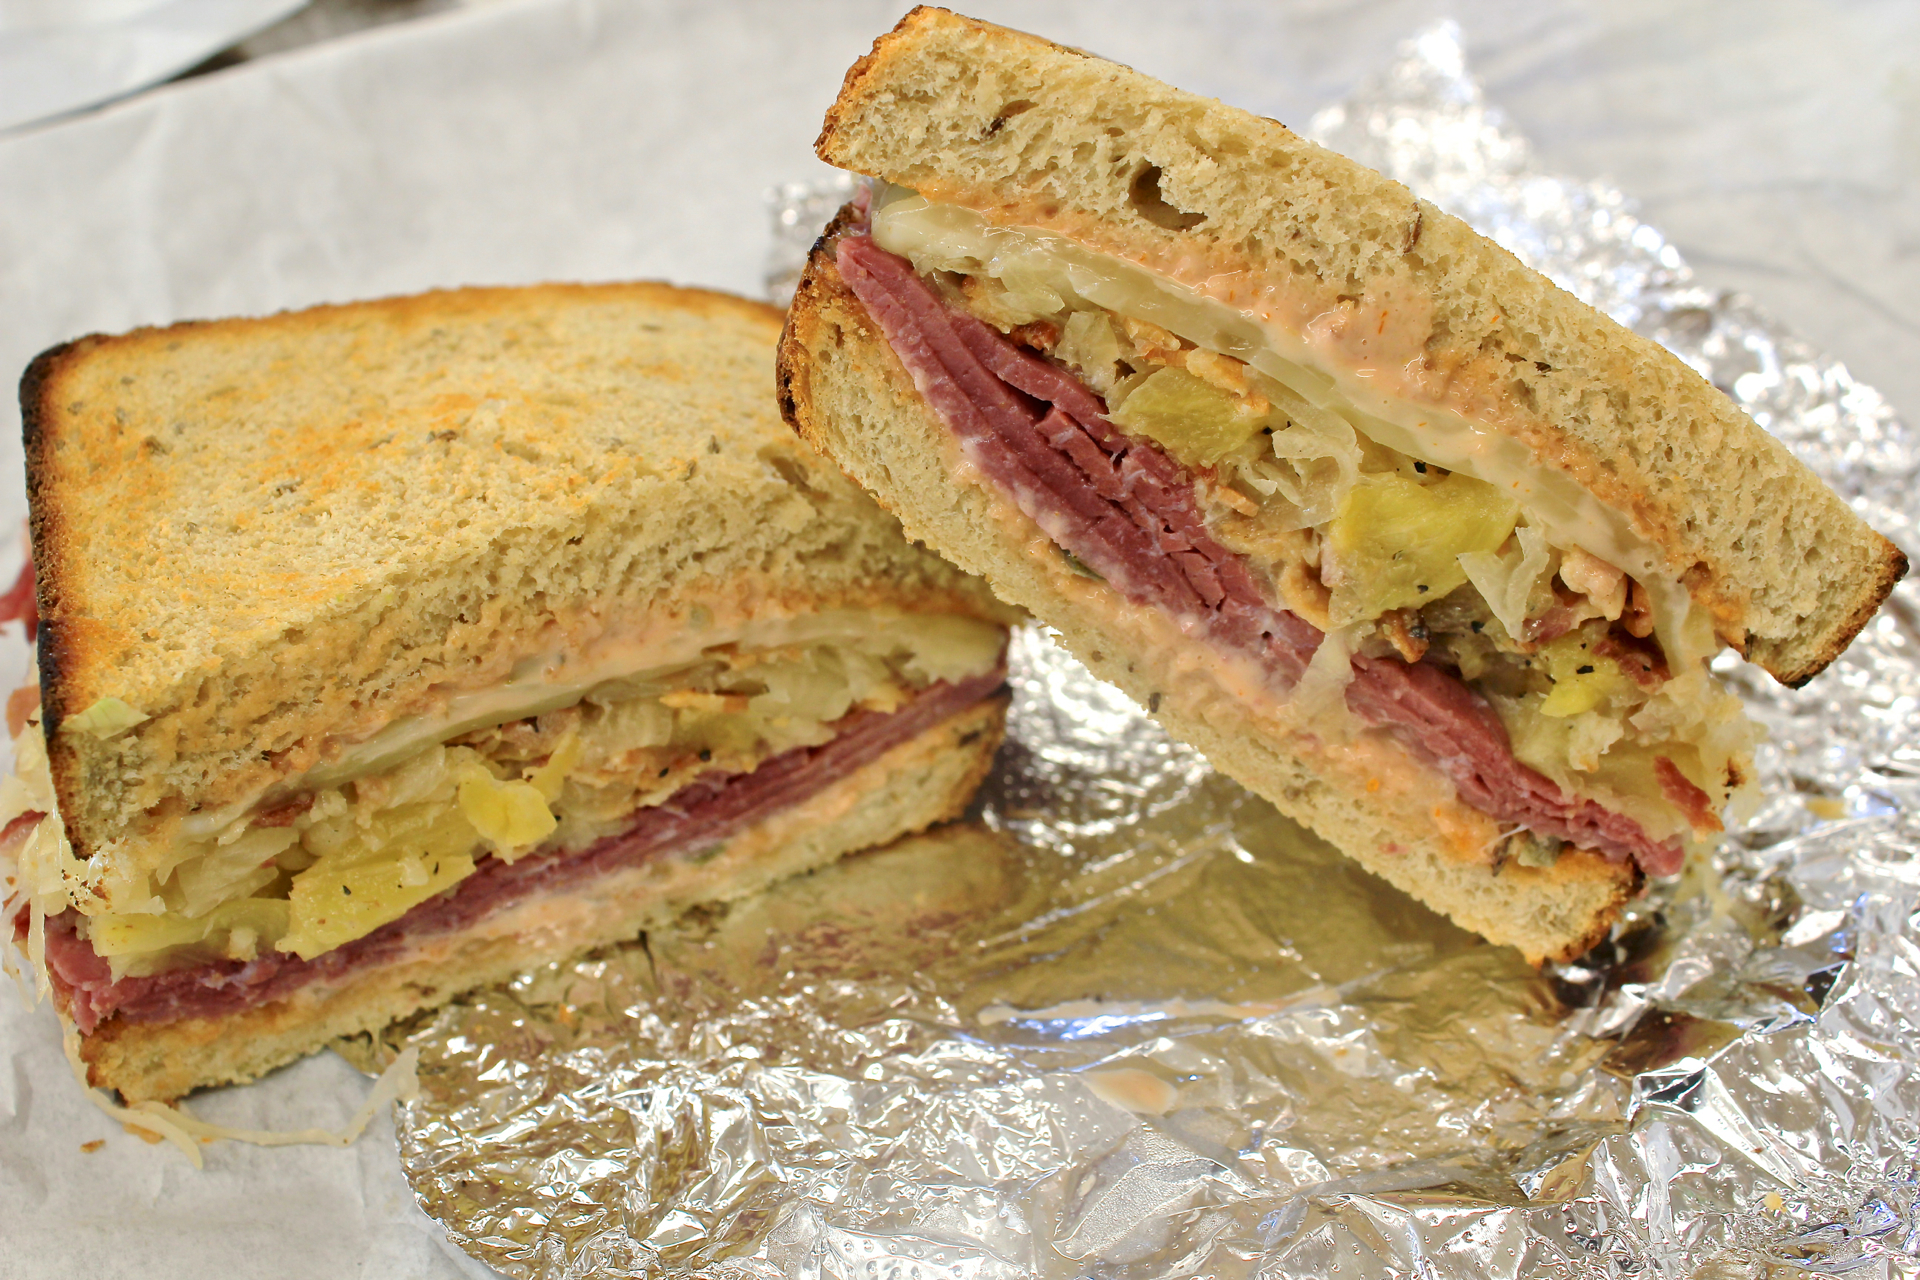 The Reuben sandwich at Roger's Deli & Doughnuts.